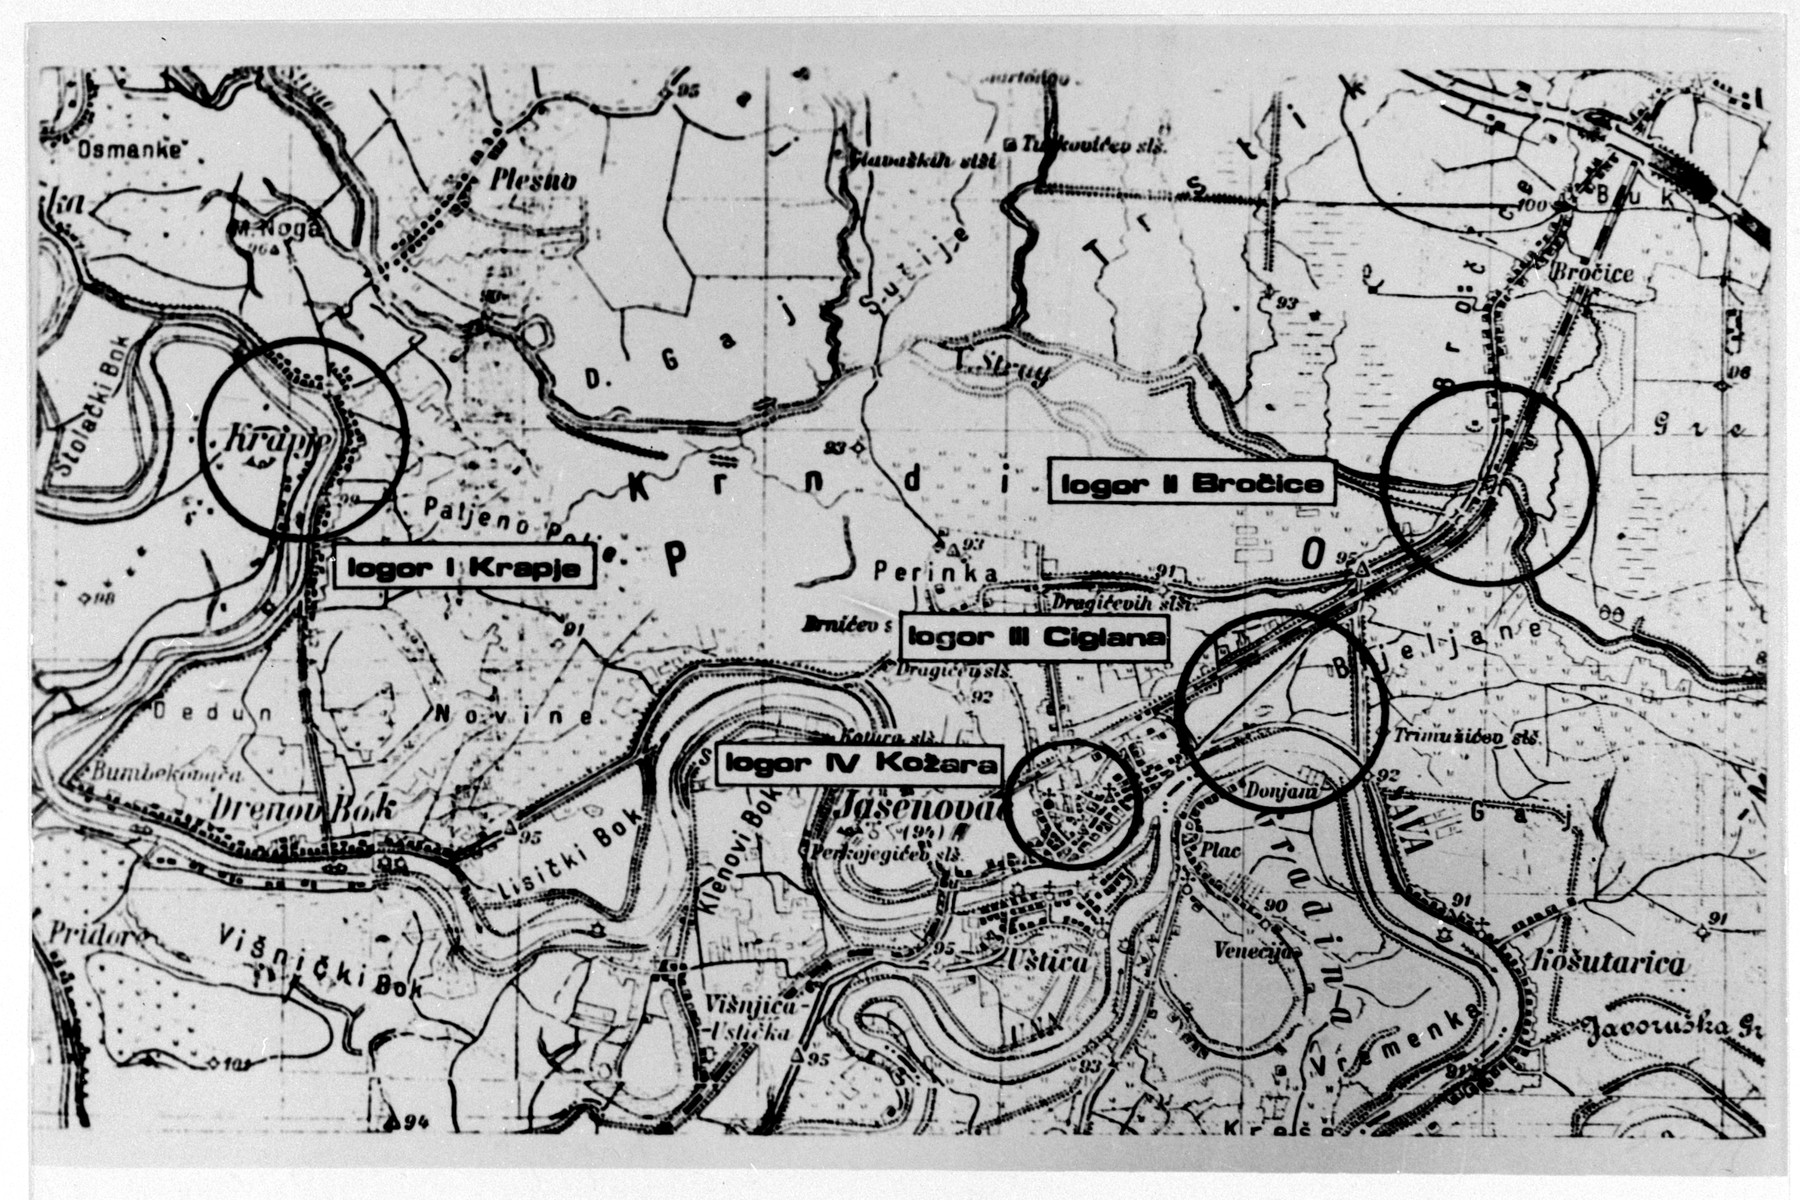 A map showing the location of four of the concentration camps that made up the Jasenovac camp system.